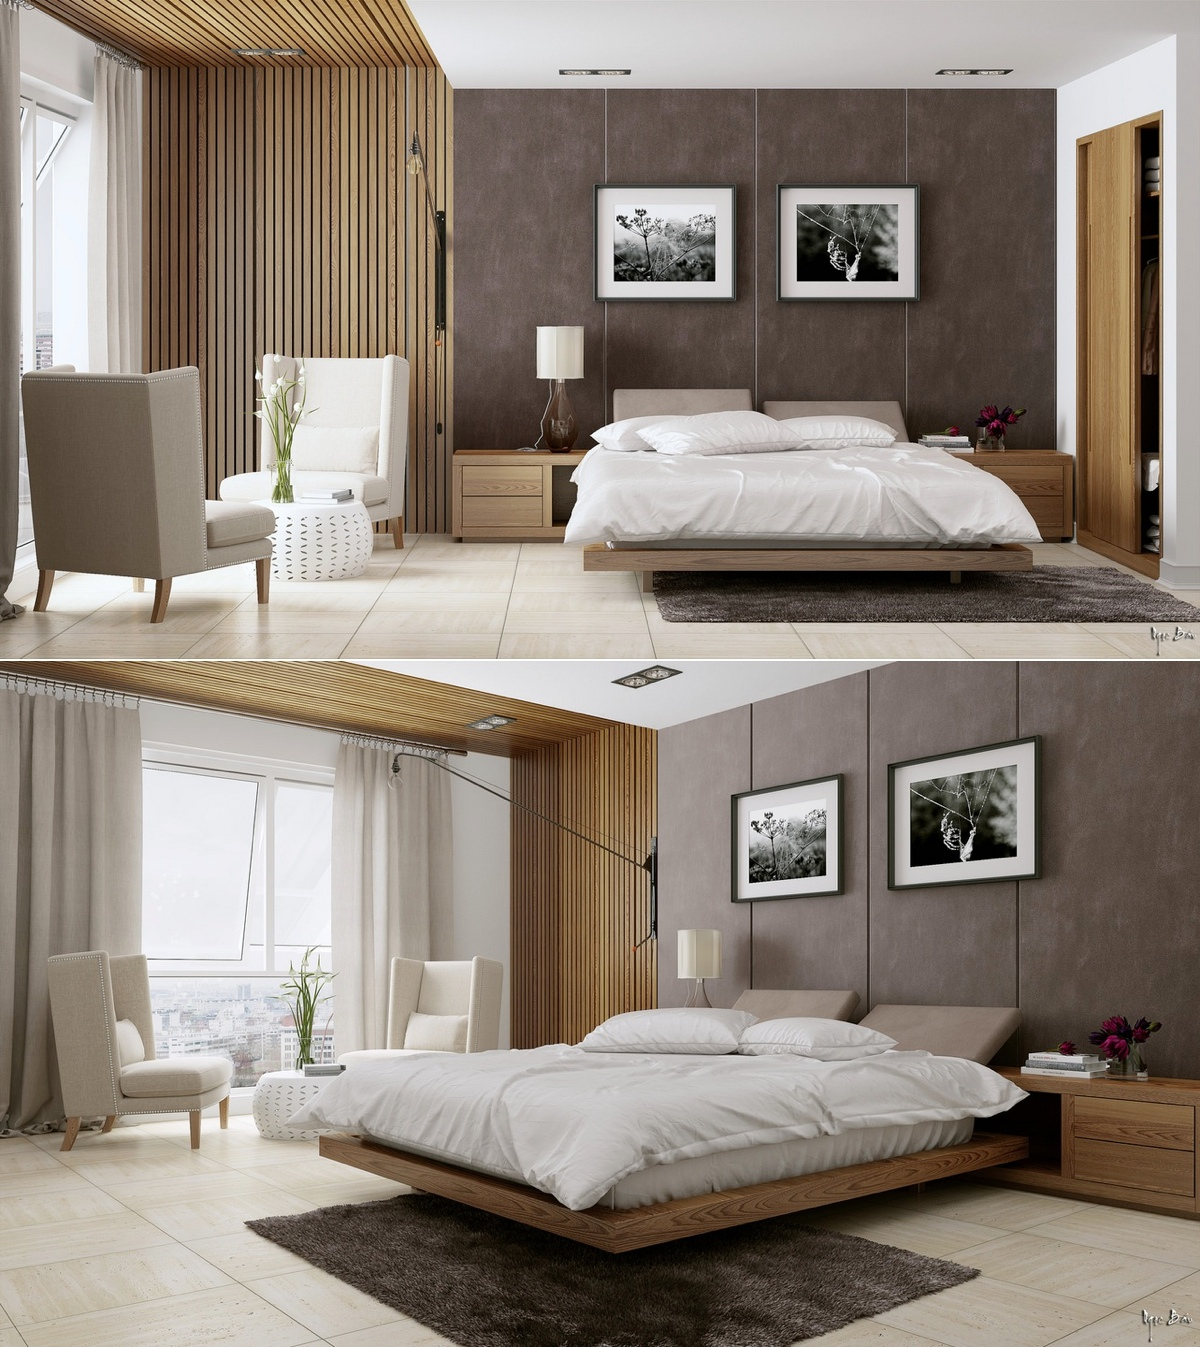 creative bedroom ideas.  Stylish Bedroom Designs with Beautiful Creative Details